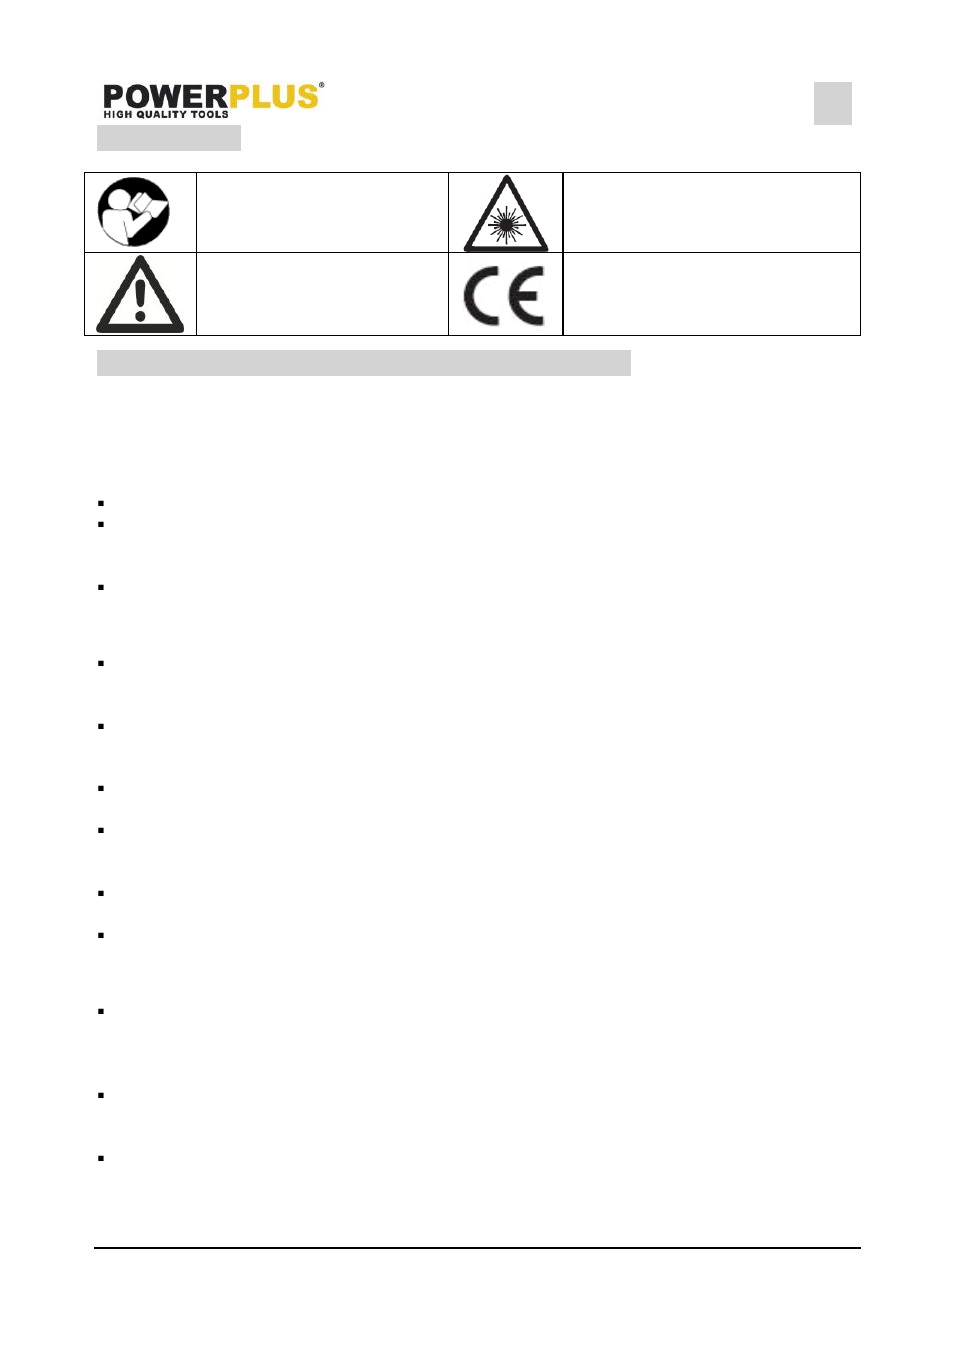 Mastercraft table saw wiring choice existing switch outlet wiring mastercraft table saw wiring images wiring table and diagram powerplus powx180 band saw 350w en page4 greentooth Image collections